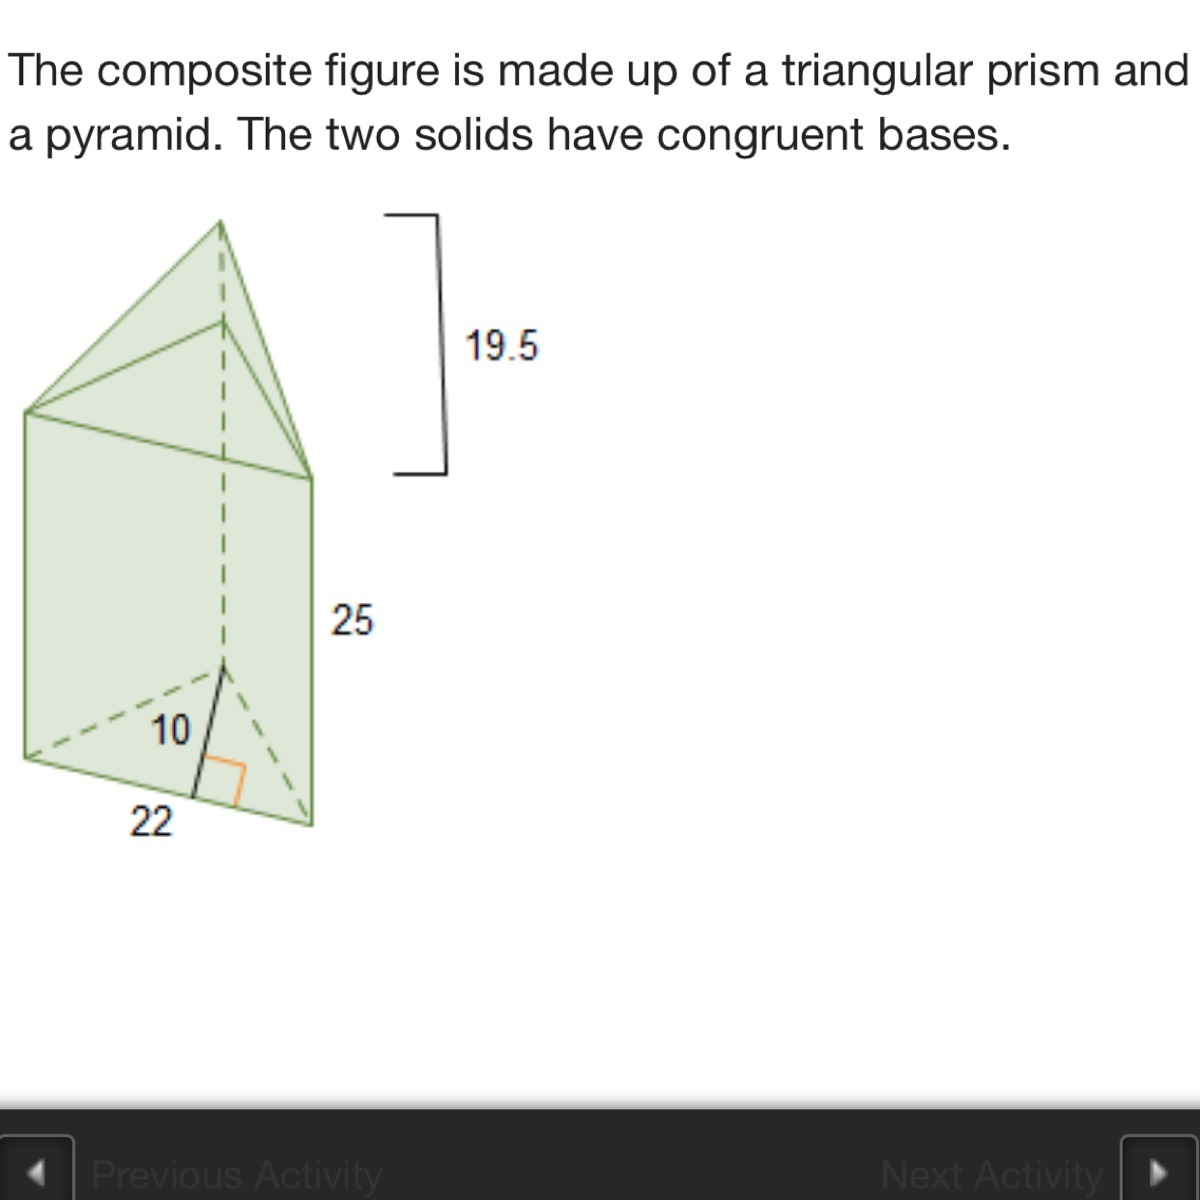 What Is The Volume Of The Composite Figure